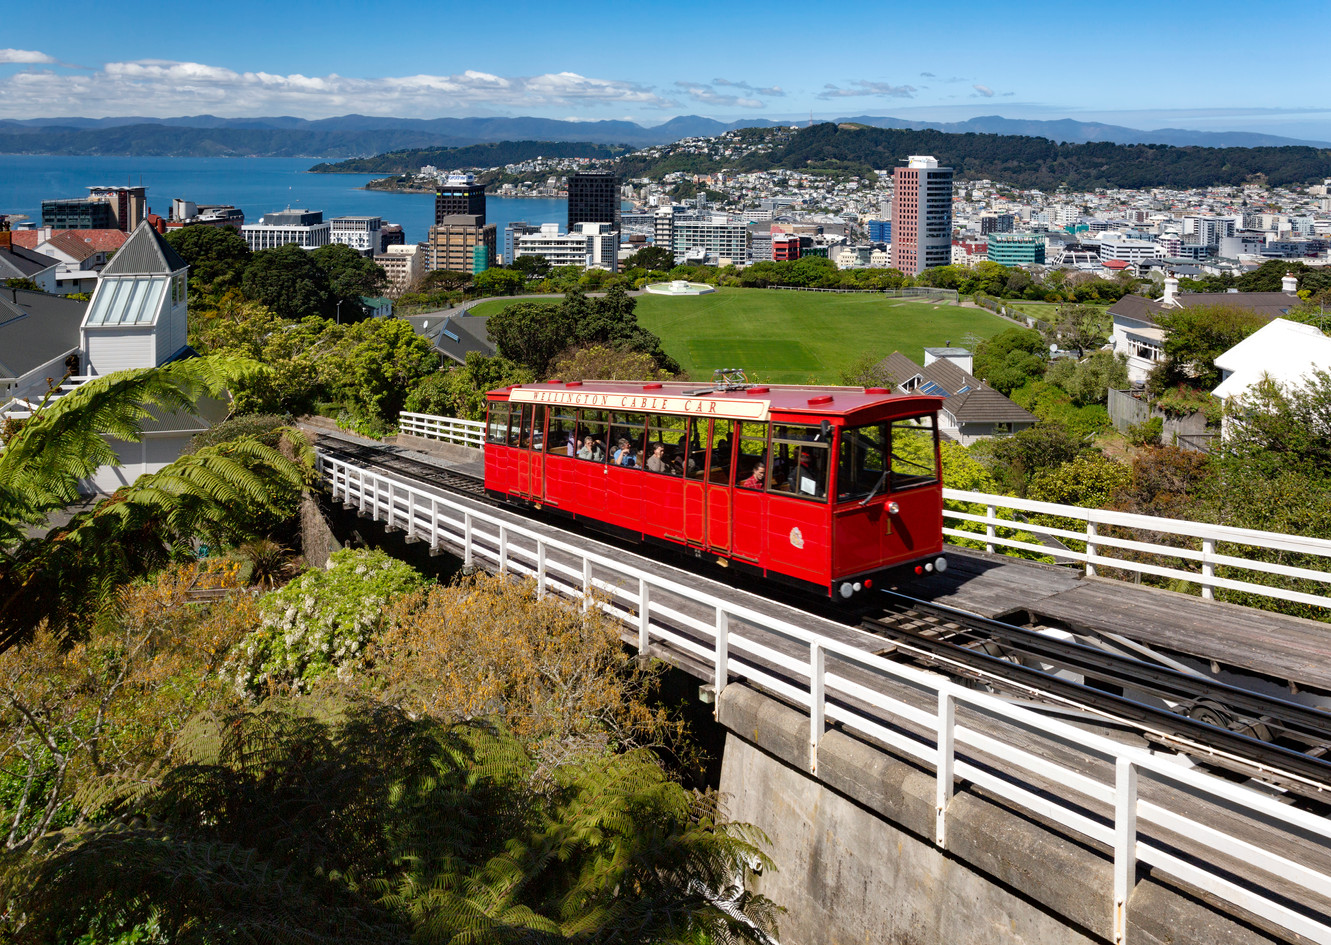 Wellington City with iconic cable car